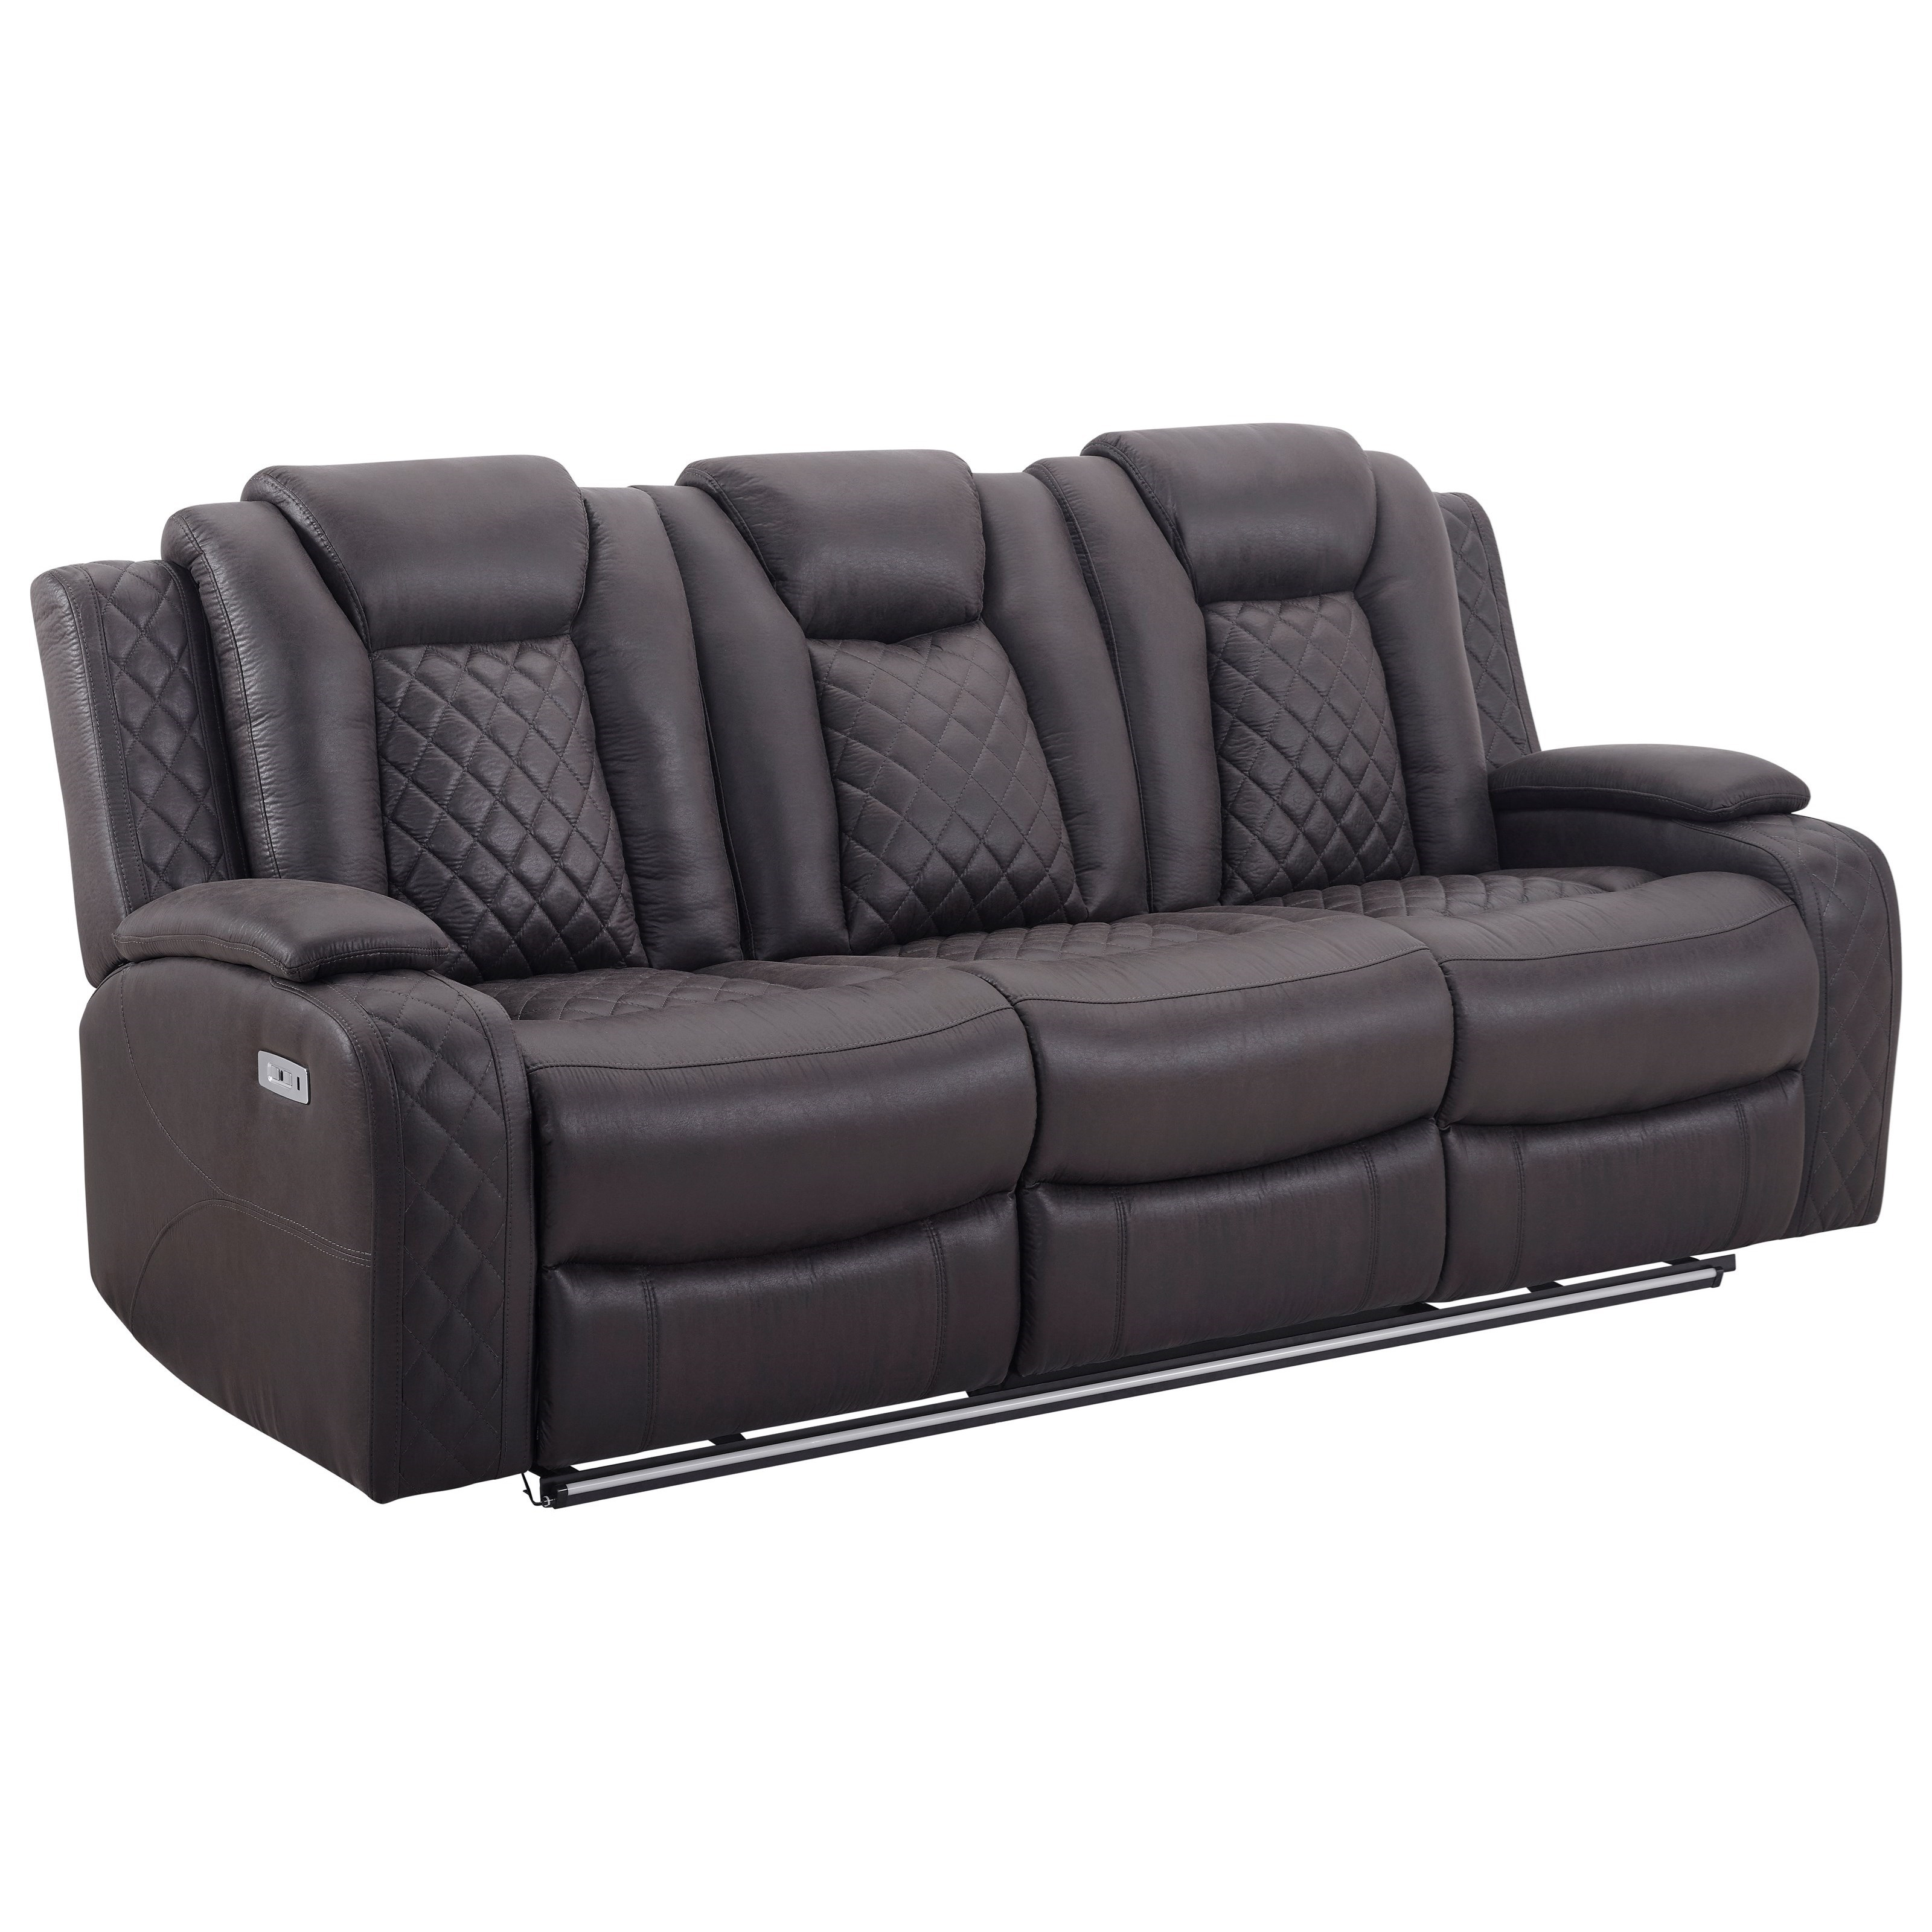 Dyer Power Reclining Sofa by New Classic at Rife's Home Furniture